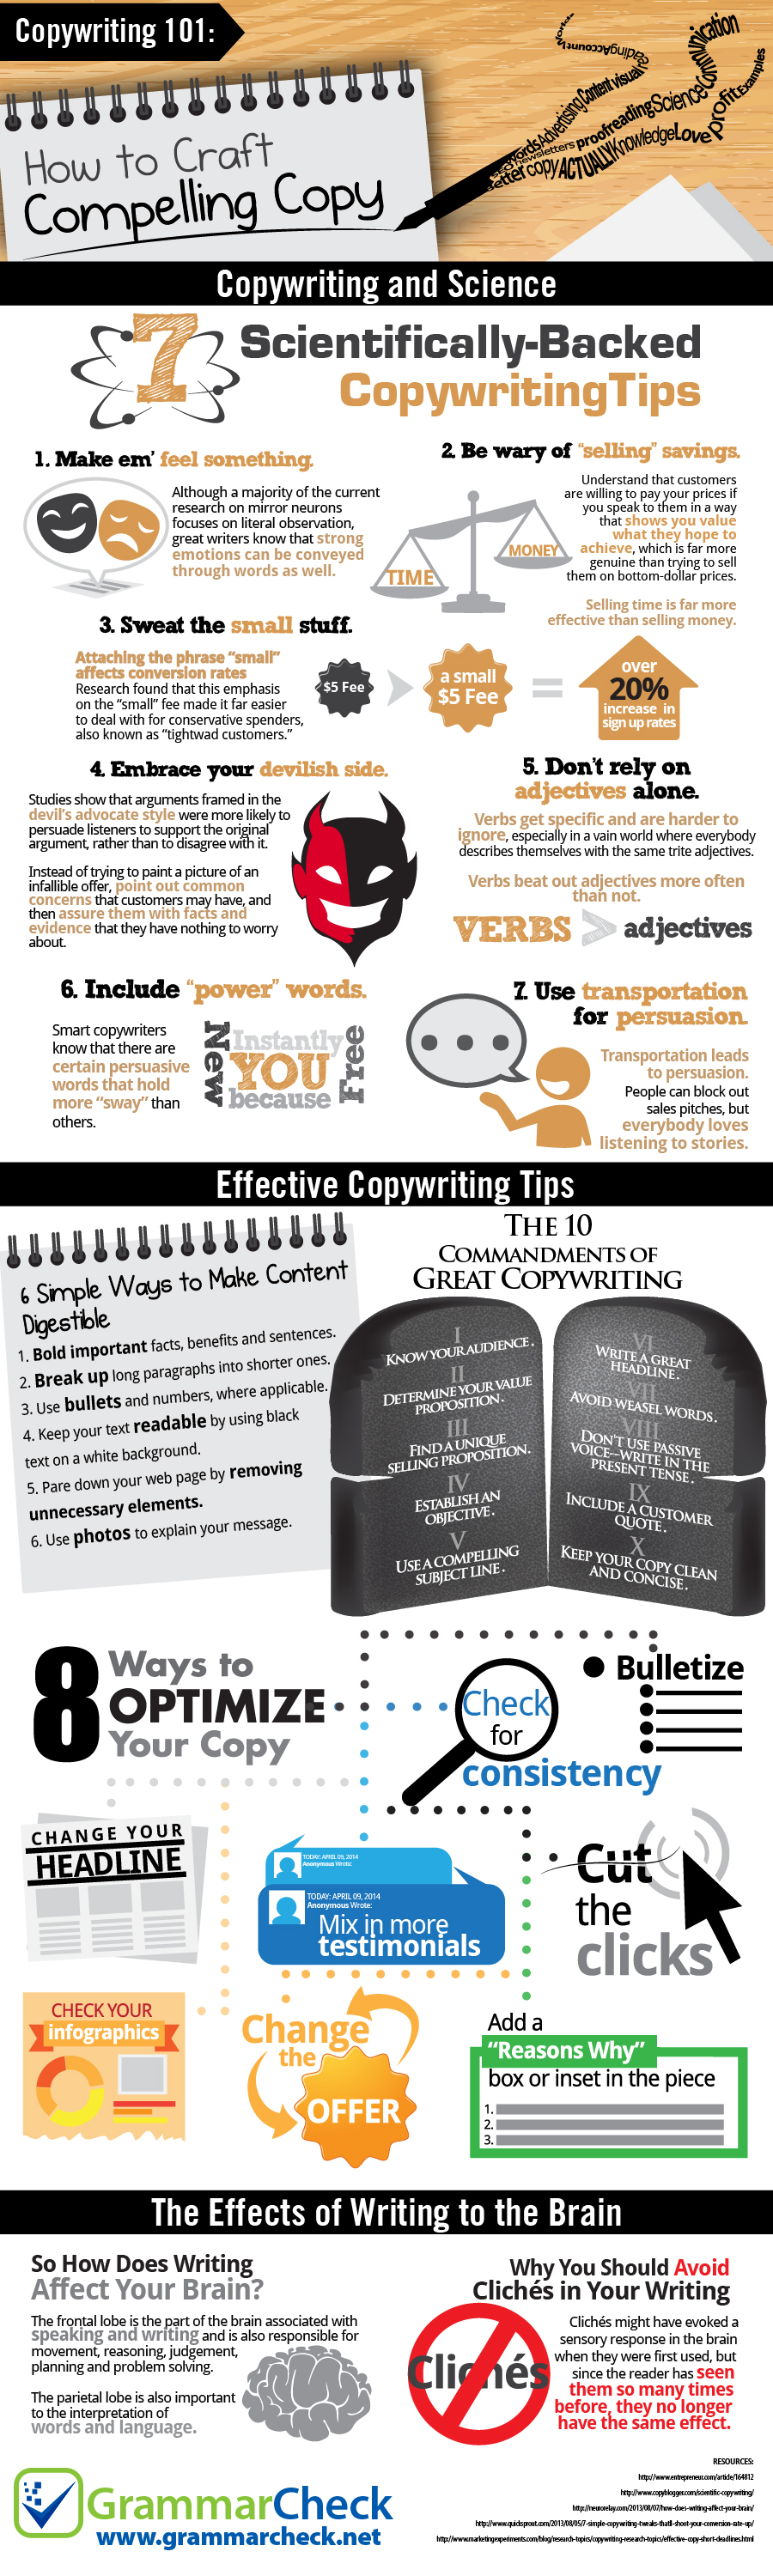 Copywriting 101: How to Write Compelling Copy (Infographic)